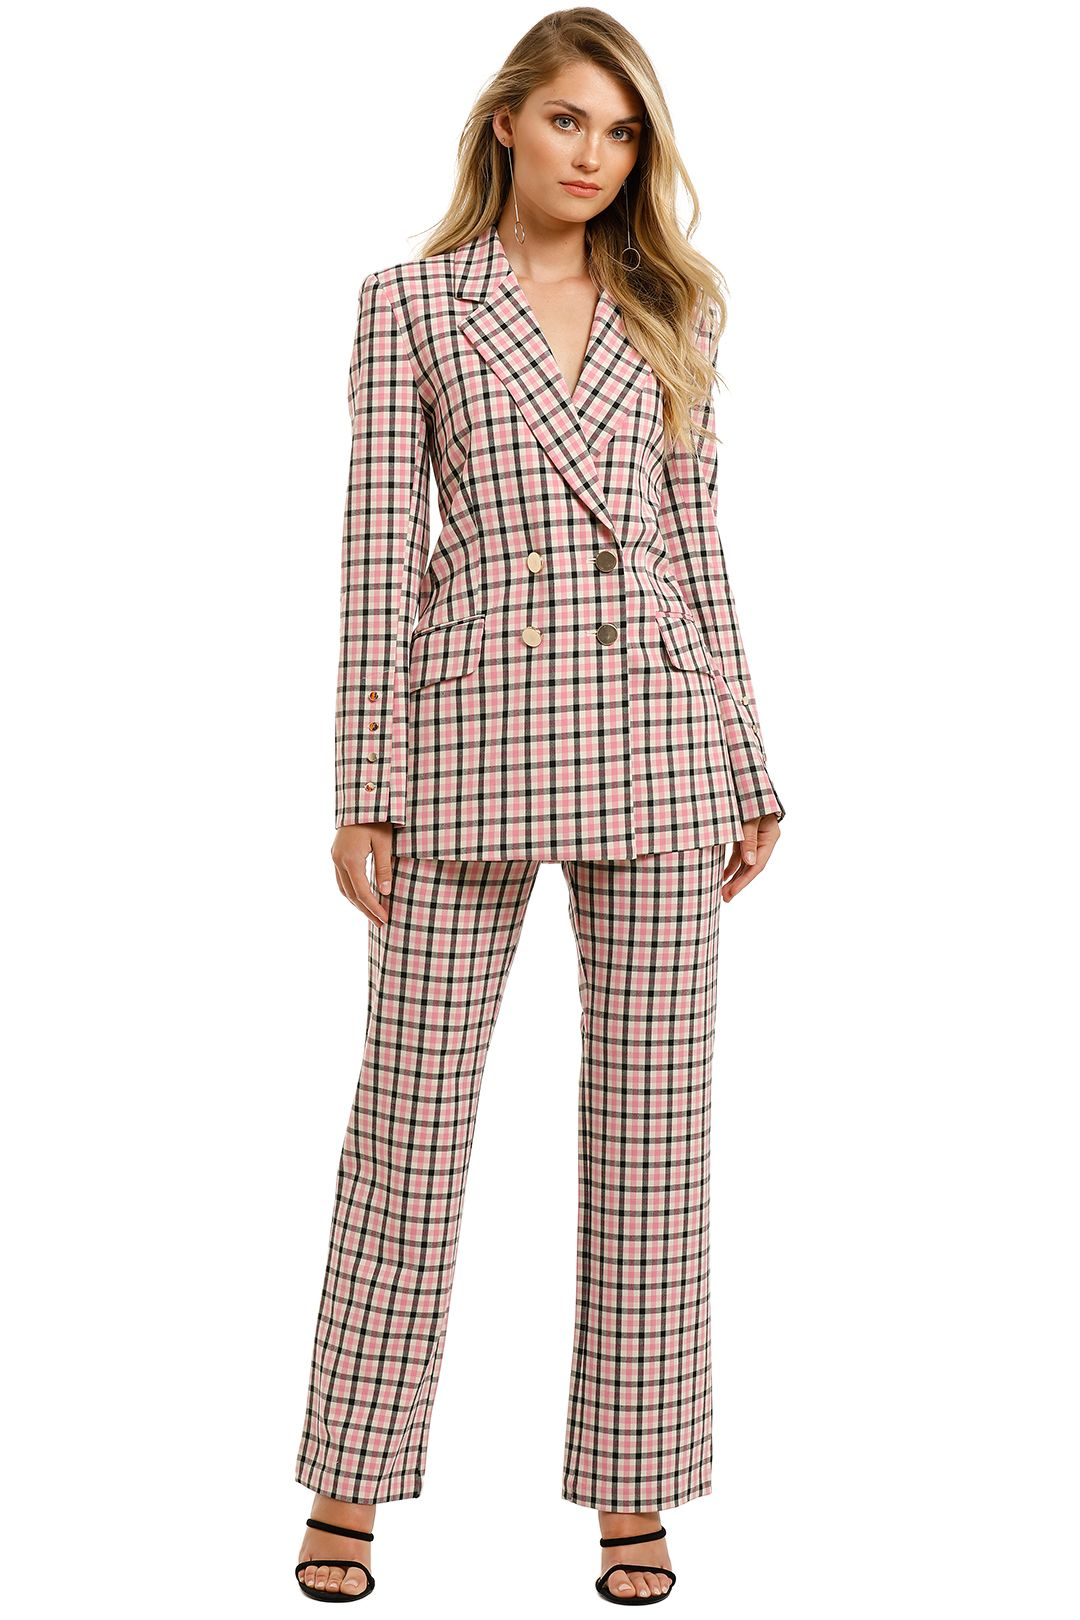 Pasduchas-Checker-Blazer-and-Pant-Suit-Pink-Check-Front